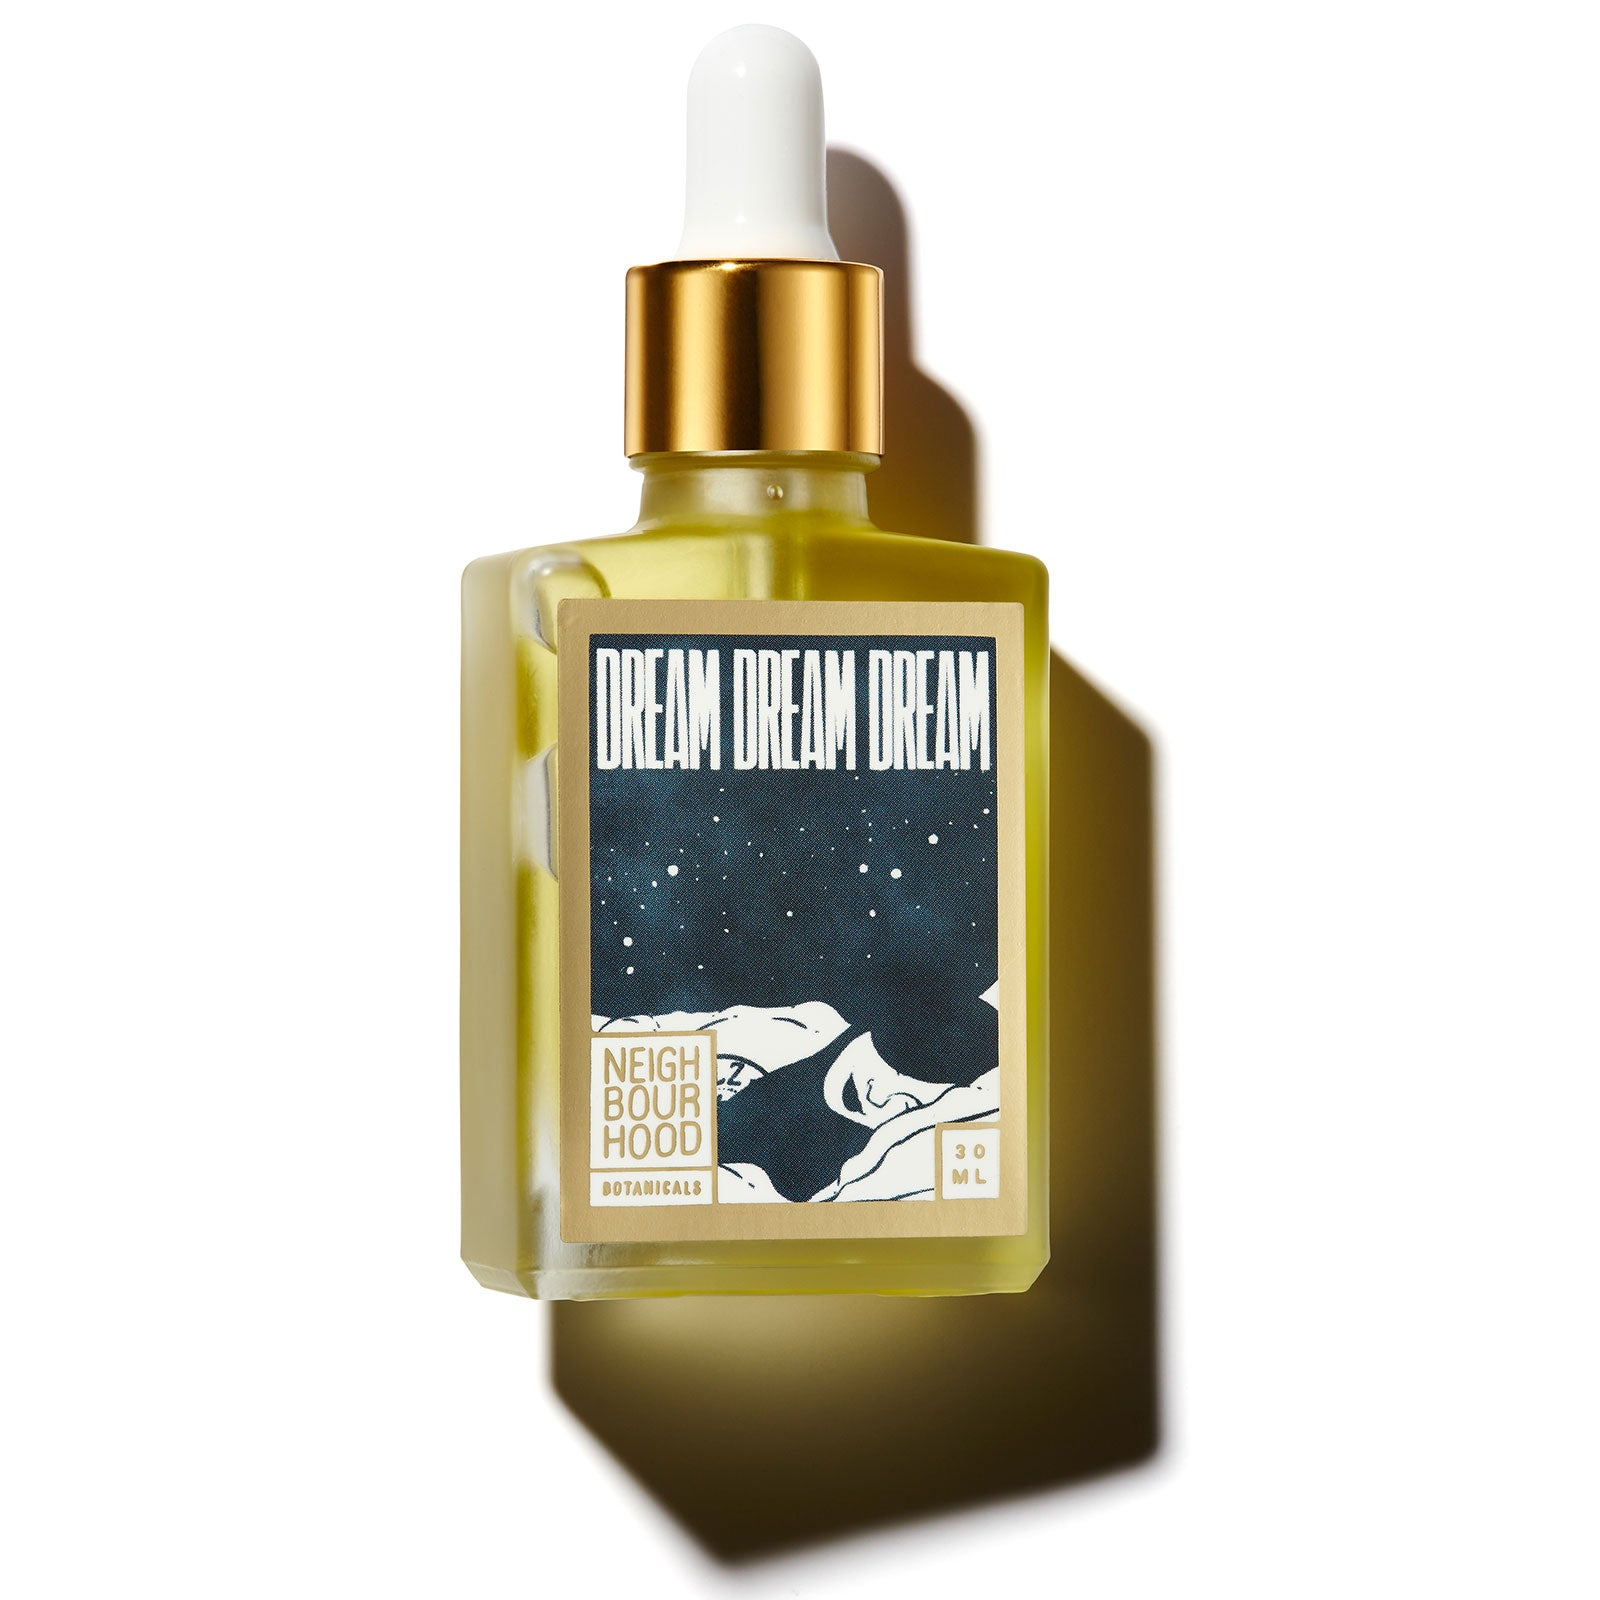 Neighbourhood Botanicals Dream Dream Dream Night Oil, 30ml